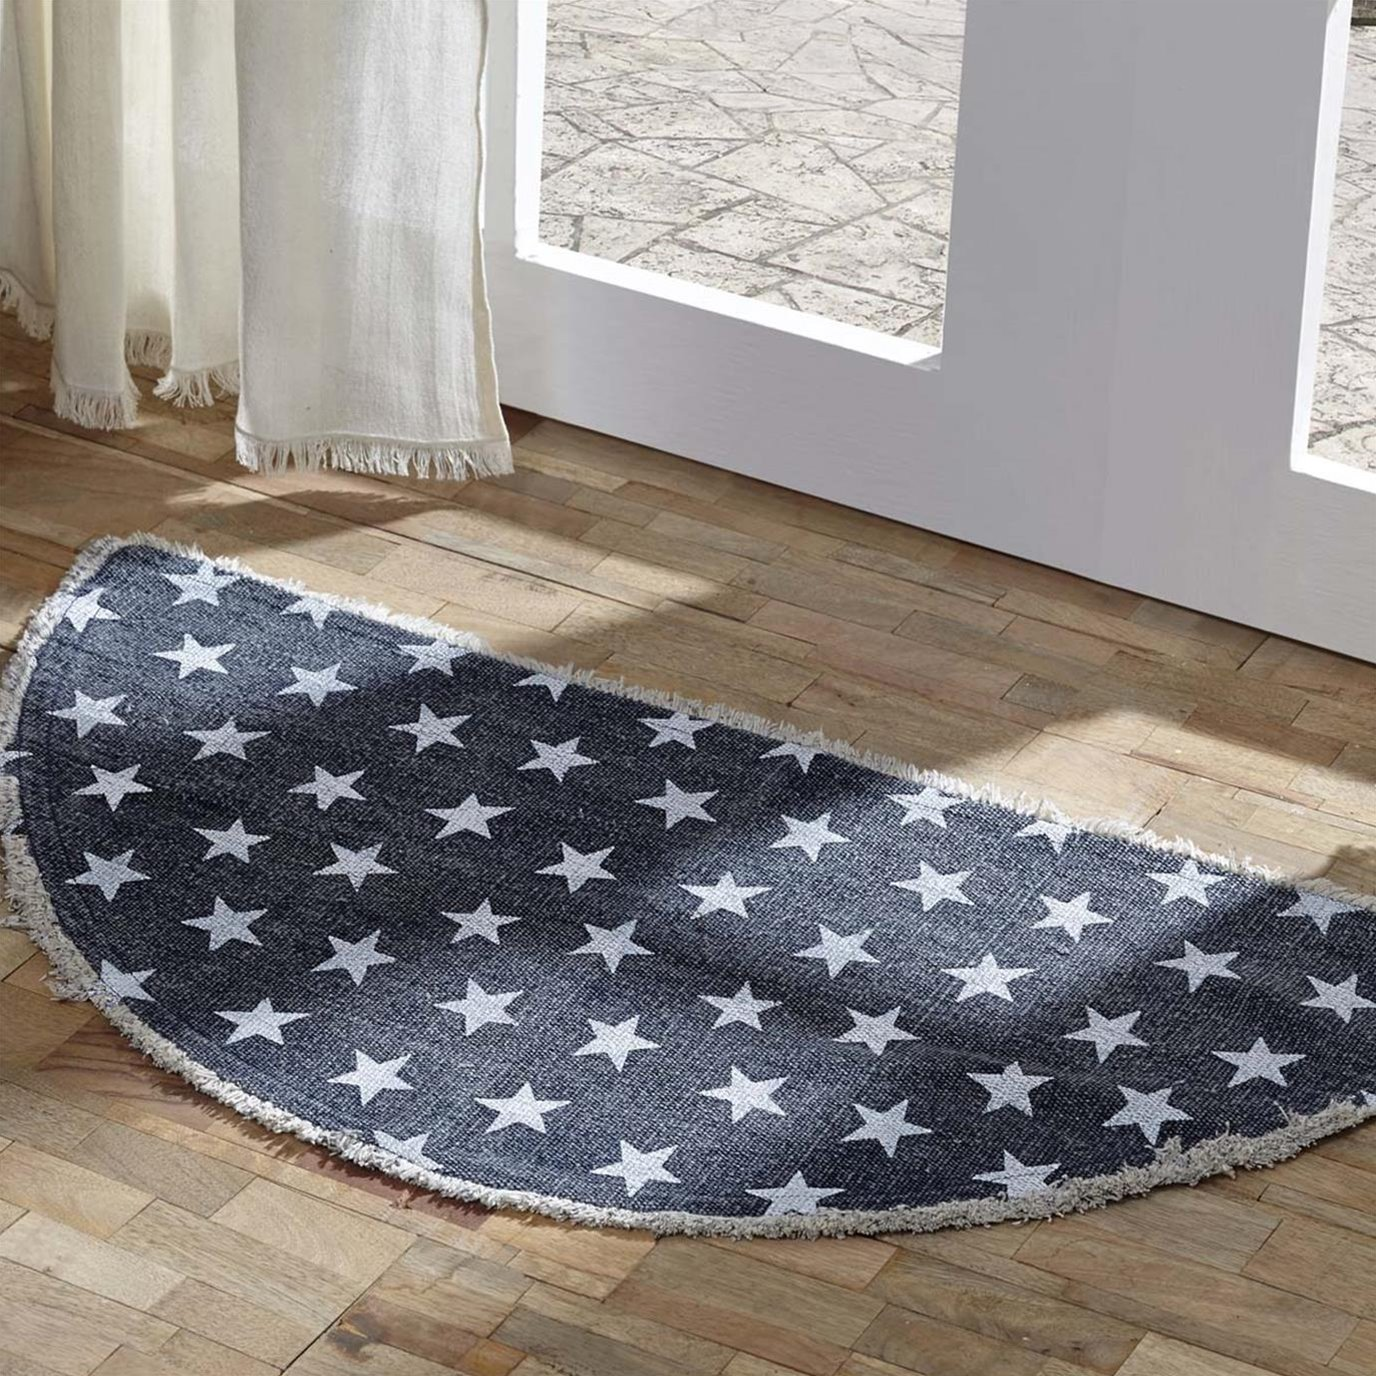 Multi Star Navy Cotton Rug Half Circle 16.5x33